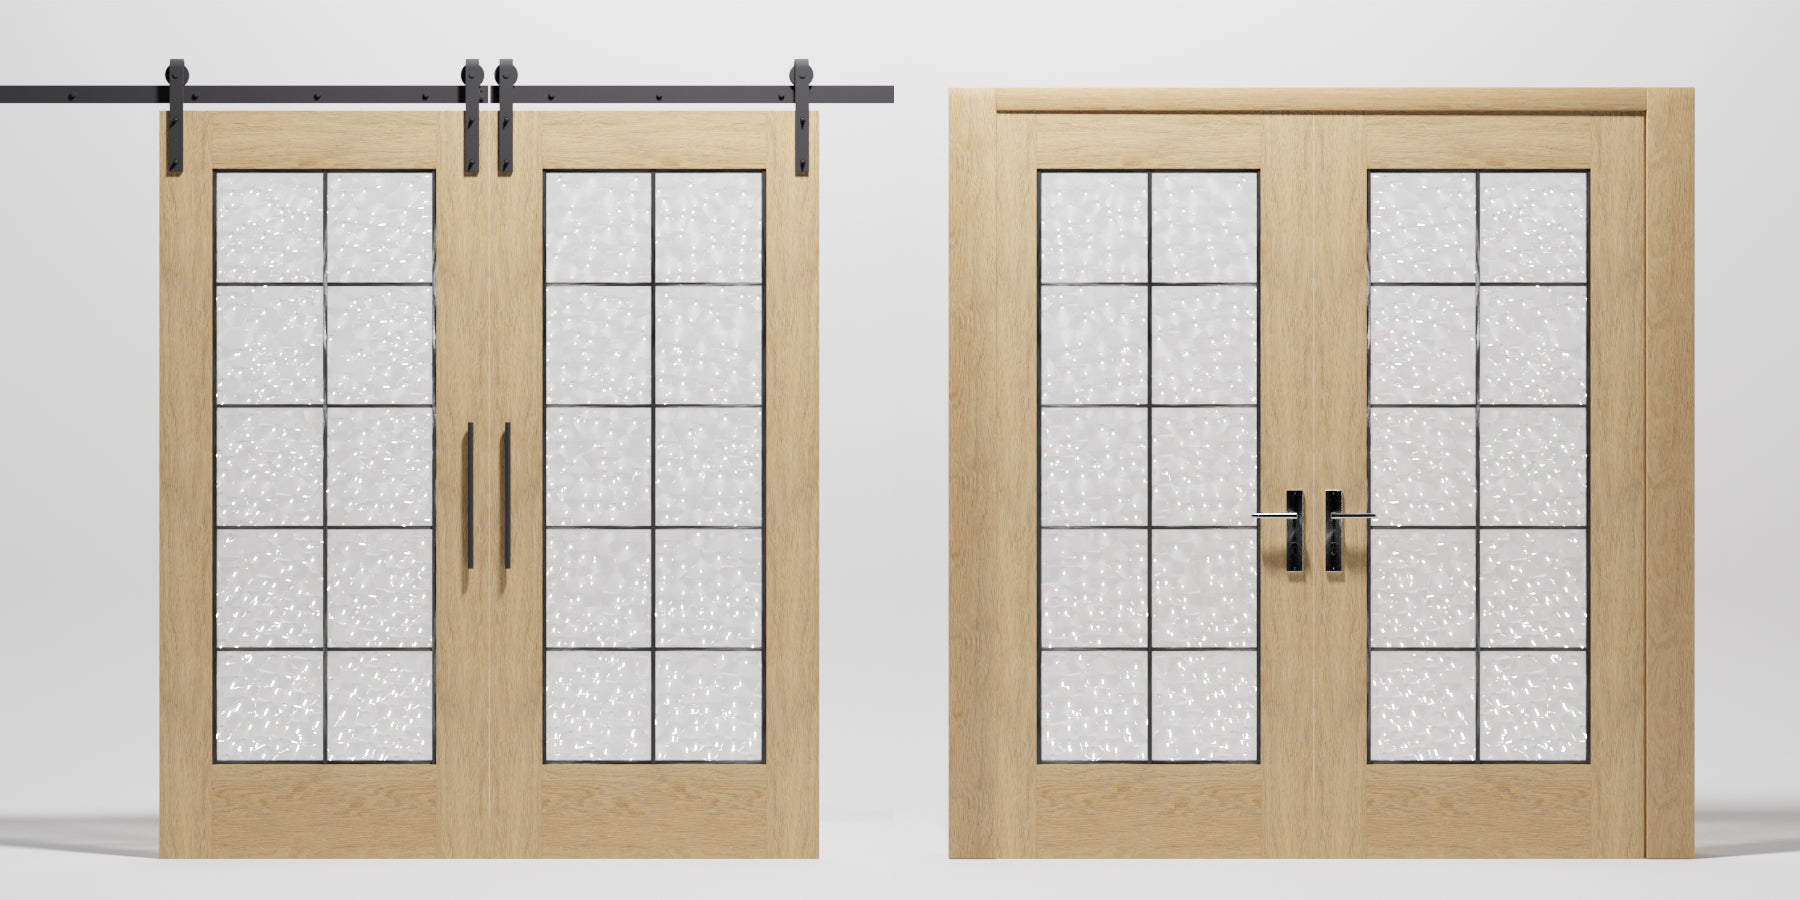 Double Full French Glass Barn Door Design by RealCraft - Sliding and Swinging.